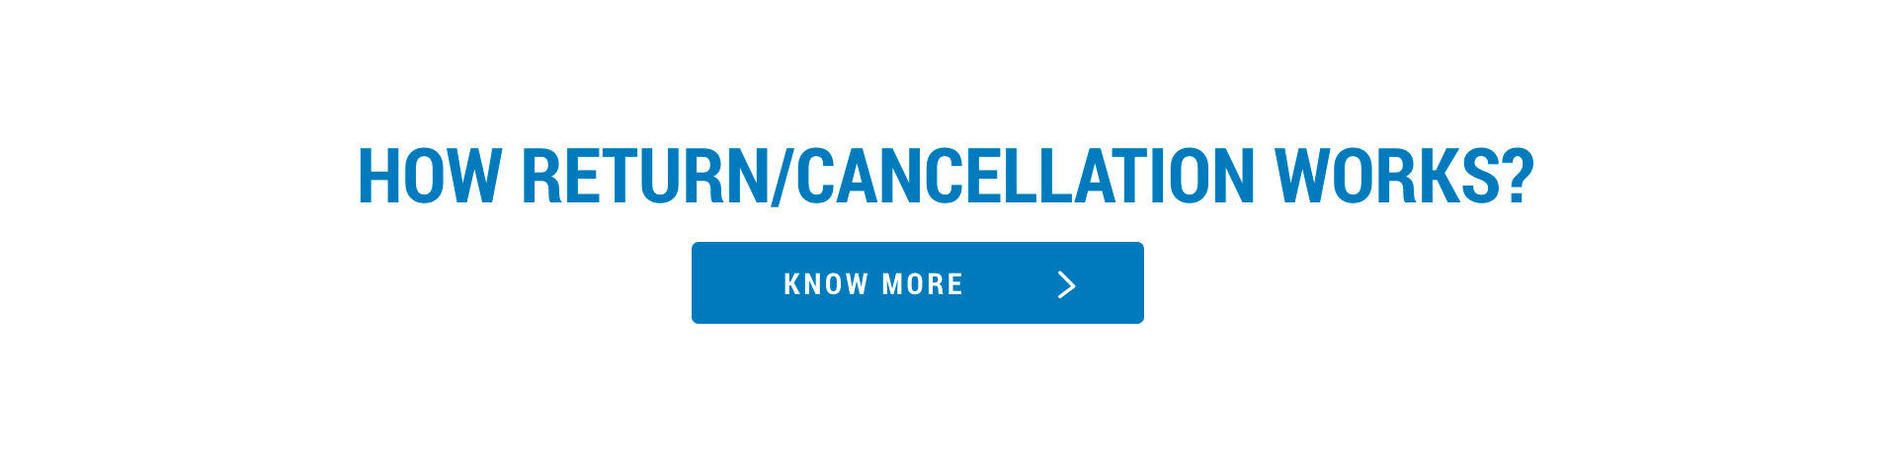 Decathlon Product Return Policy, Decathlon Products Cancellation Policy